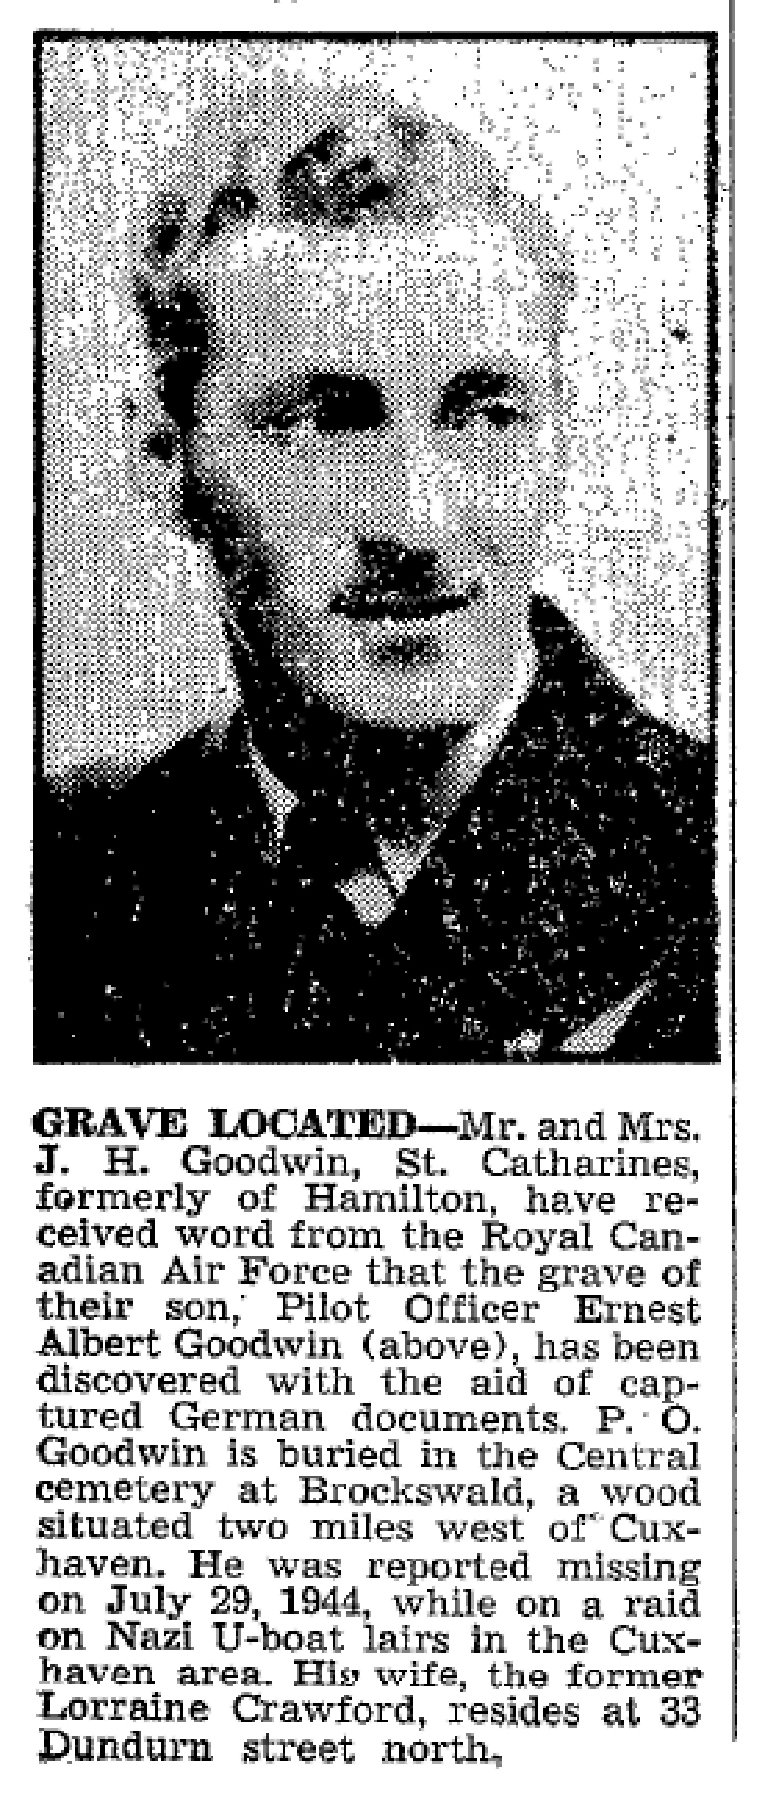 "A newspaper article regarding Pilot Officer Ernest Goodwin. The text of the article reads: ""GRAVE LOCATED—Mr. and Mrs. J. H. Goodwin, St. Catharines, formerly of Hamilton, have received word from the Royal Canadian Air Force that the grave of their son, Pilot Officer Ernest Albert Goodwin (above), has been discovered with the aid of captured German documents. P.O. Goodwin is buried in the Central cemetery at Brockswald, a wood situated two miles west of Cuxhaven. He was reported missing on July 29, 1944, while on a raid on Nazi U-boat lairs in the Cuxhaven area. His wife, the former Lorraine Crawford, resides at 33 Dundurn Street North."" CLIP: Hamilton Spectator, July 30, 1946."